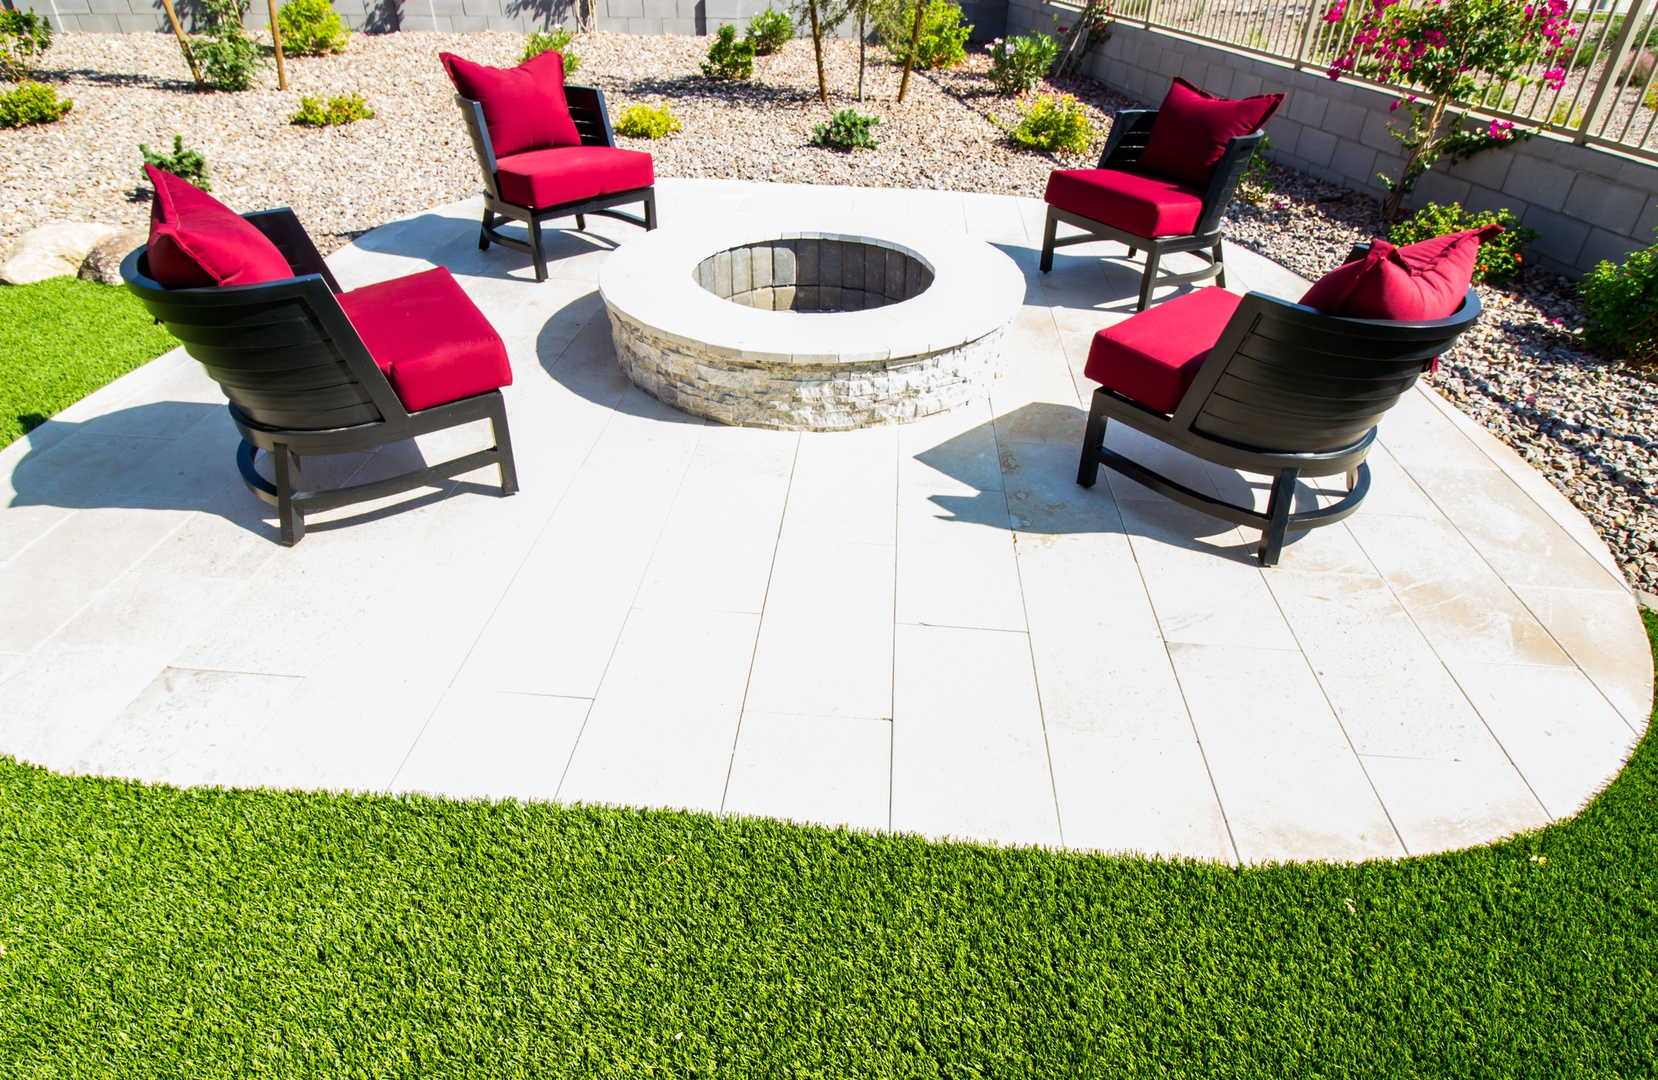 Four Patio Chairs With Cushions Surrounding Rear Patio Round Fir